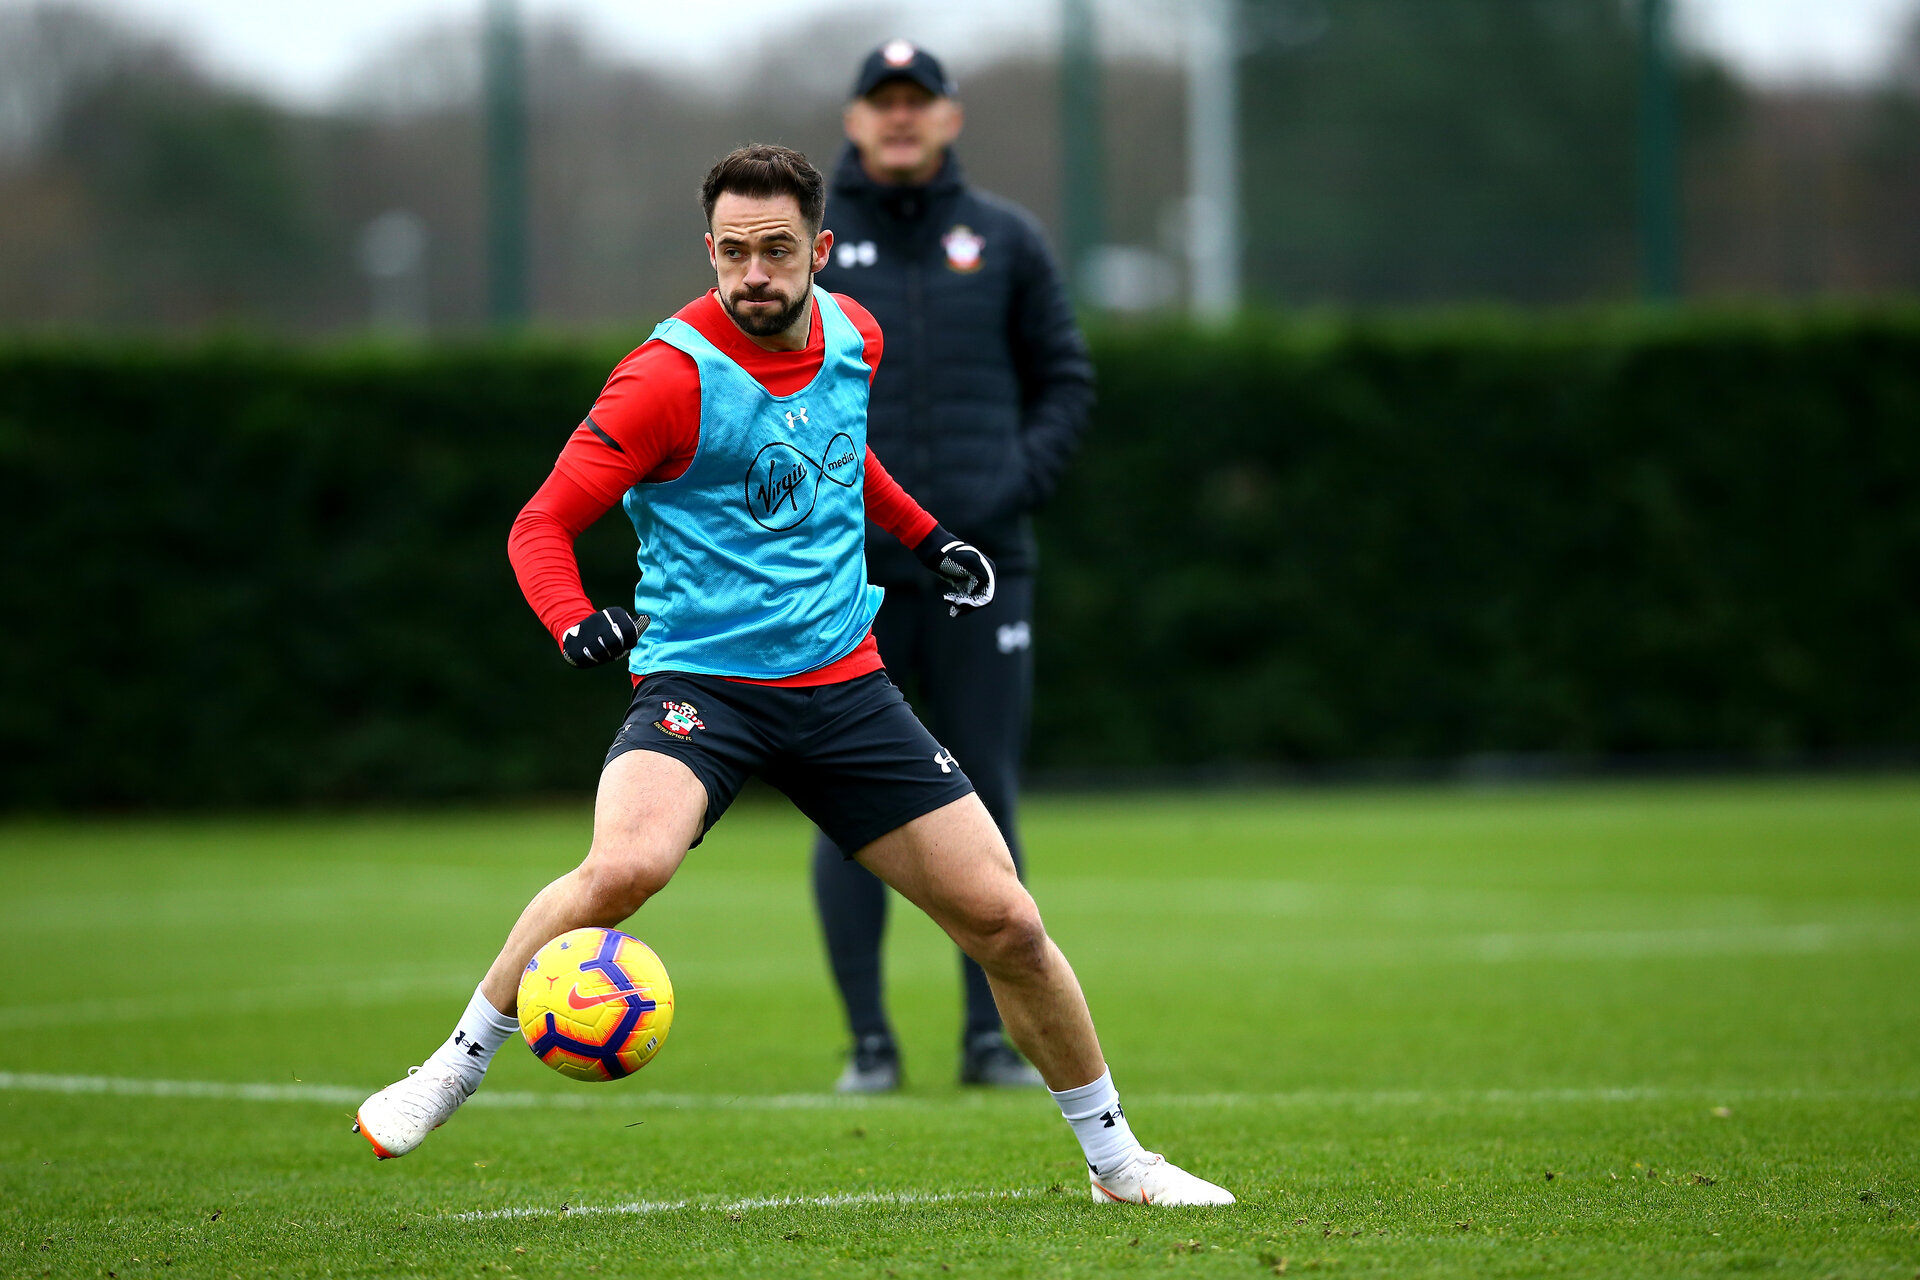 SOUTHAMPTON, ENGLAND - DECEMBER 31:  Danny Ings during a Southampton FC training session at Staplewood Training Ground on December 31, 2018 in Southampton, United Kingdom. (Photo by James Bridle - Southampton FC/Southampton FC via Getty Images)